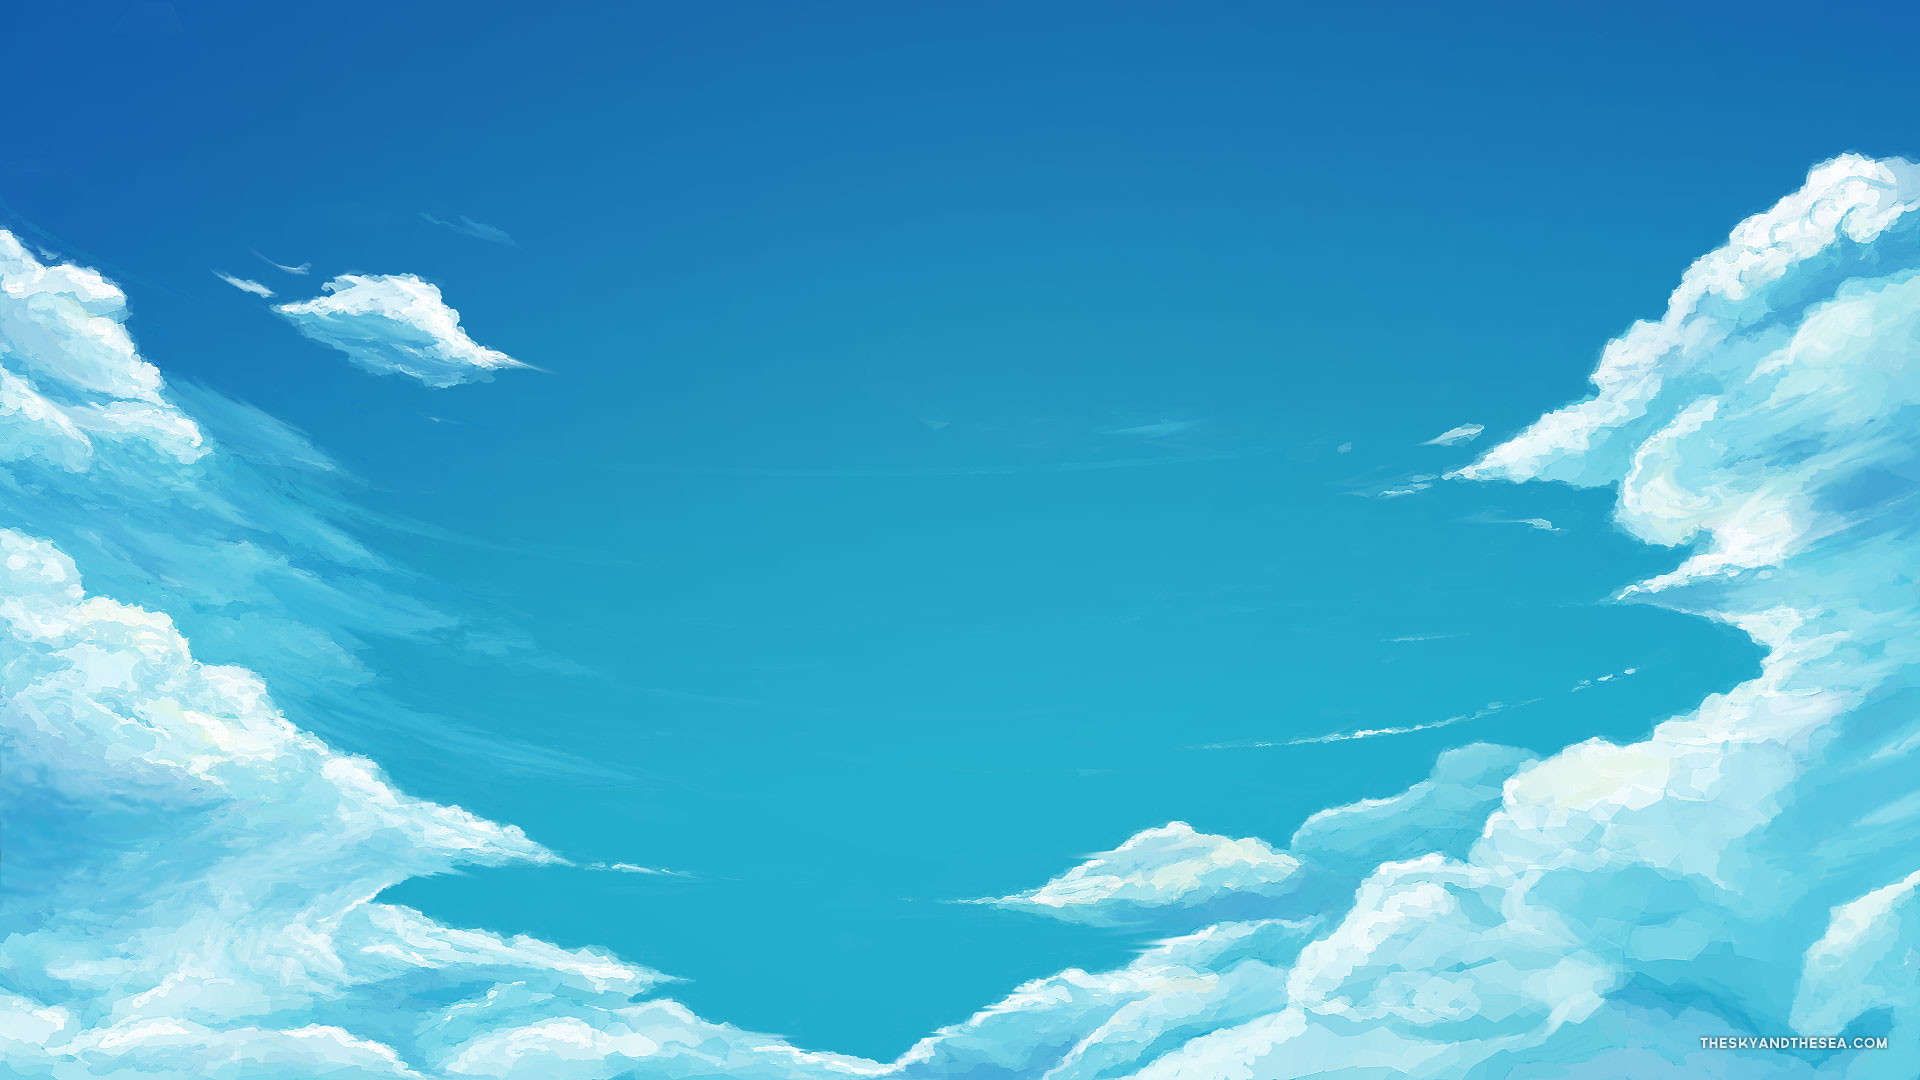 Free Wallpapers – Blue sky and clouds wallpaper